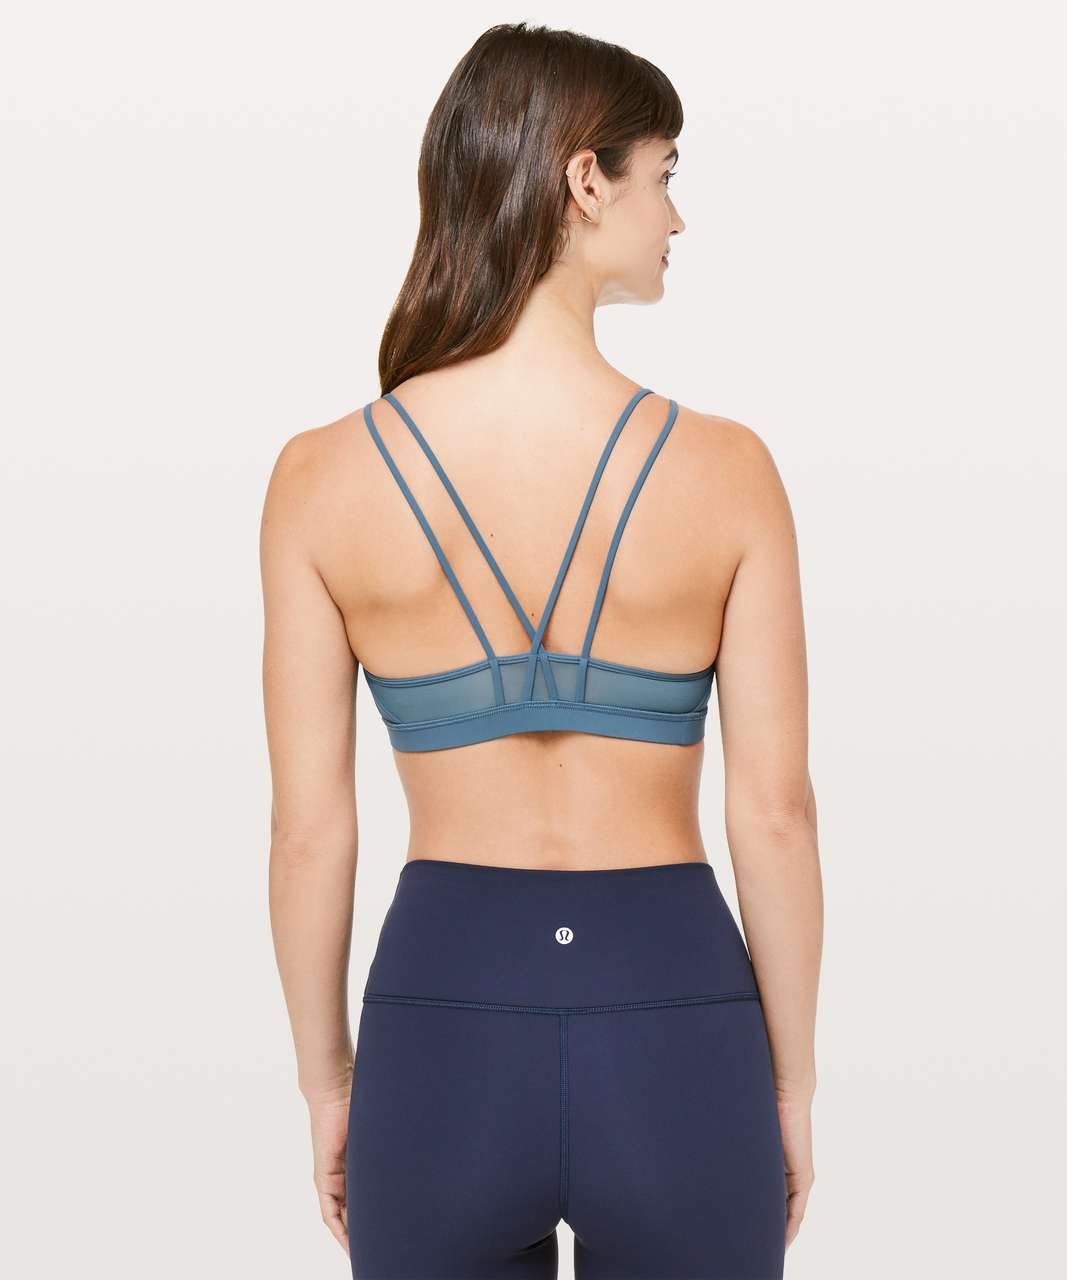 739f2ea709 Lululemon Freely Flexed Bra - Petrol Blue - lulu fanatics